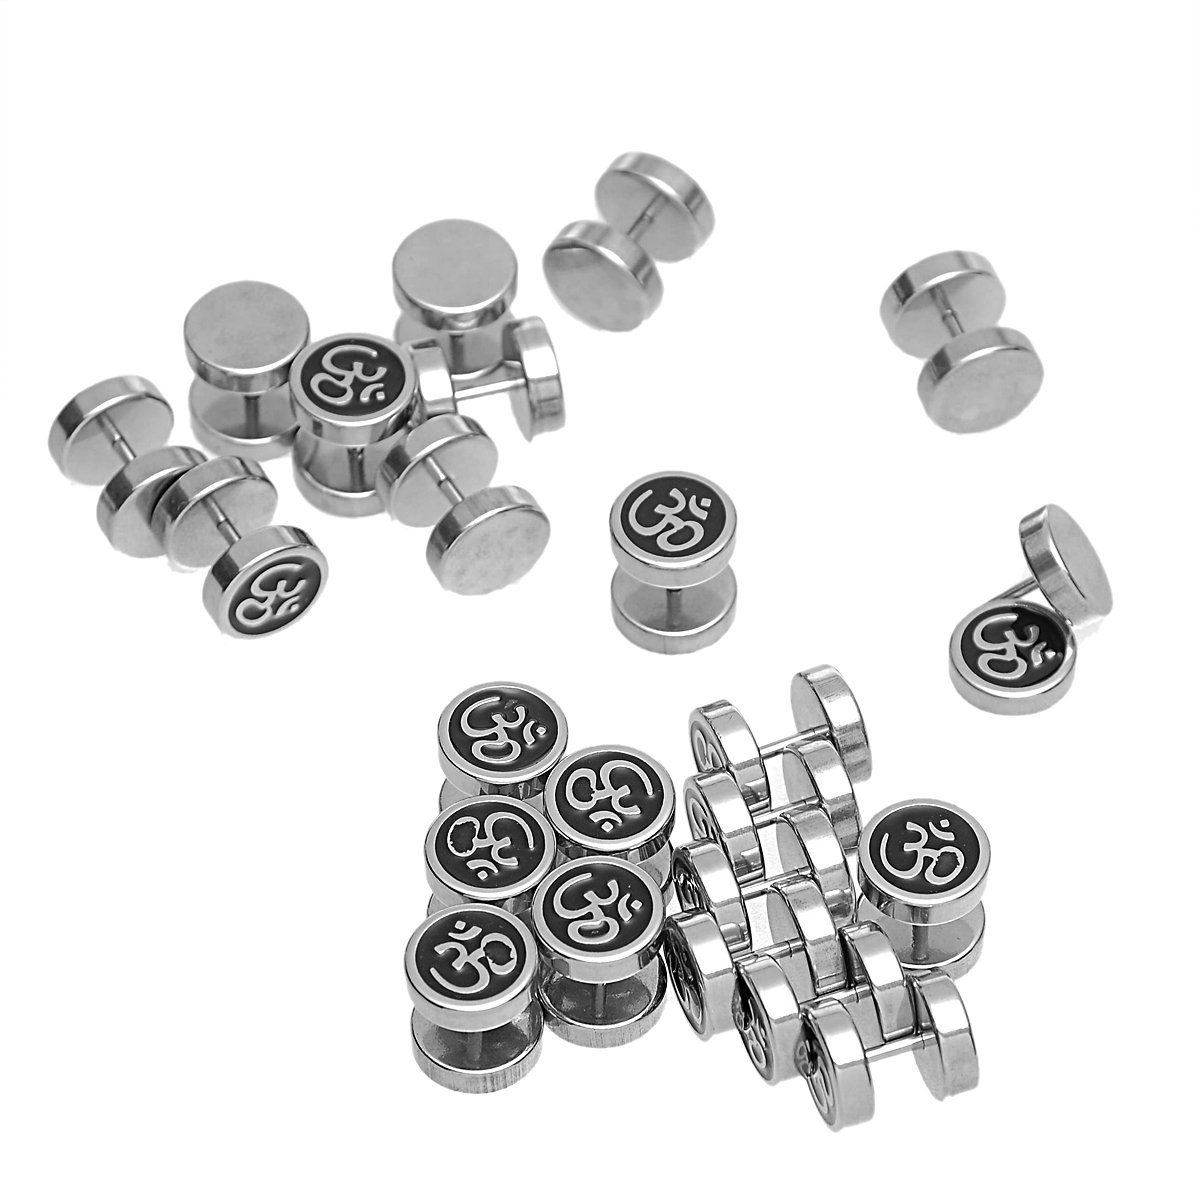 HOUSWEETY 316L Stainless Steel Round Om/Aum Sign Screw Back Barbell Stud Earrings 10mm-1pair by Housweety (Image #3)